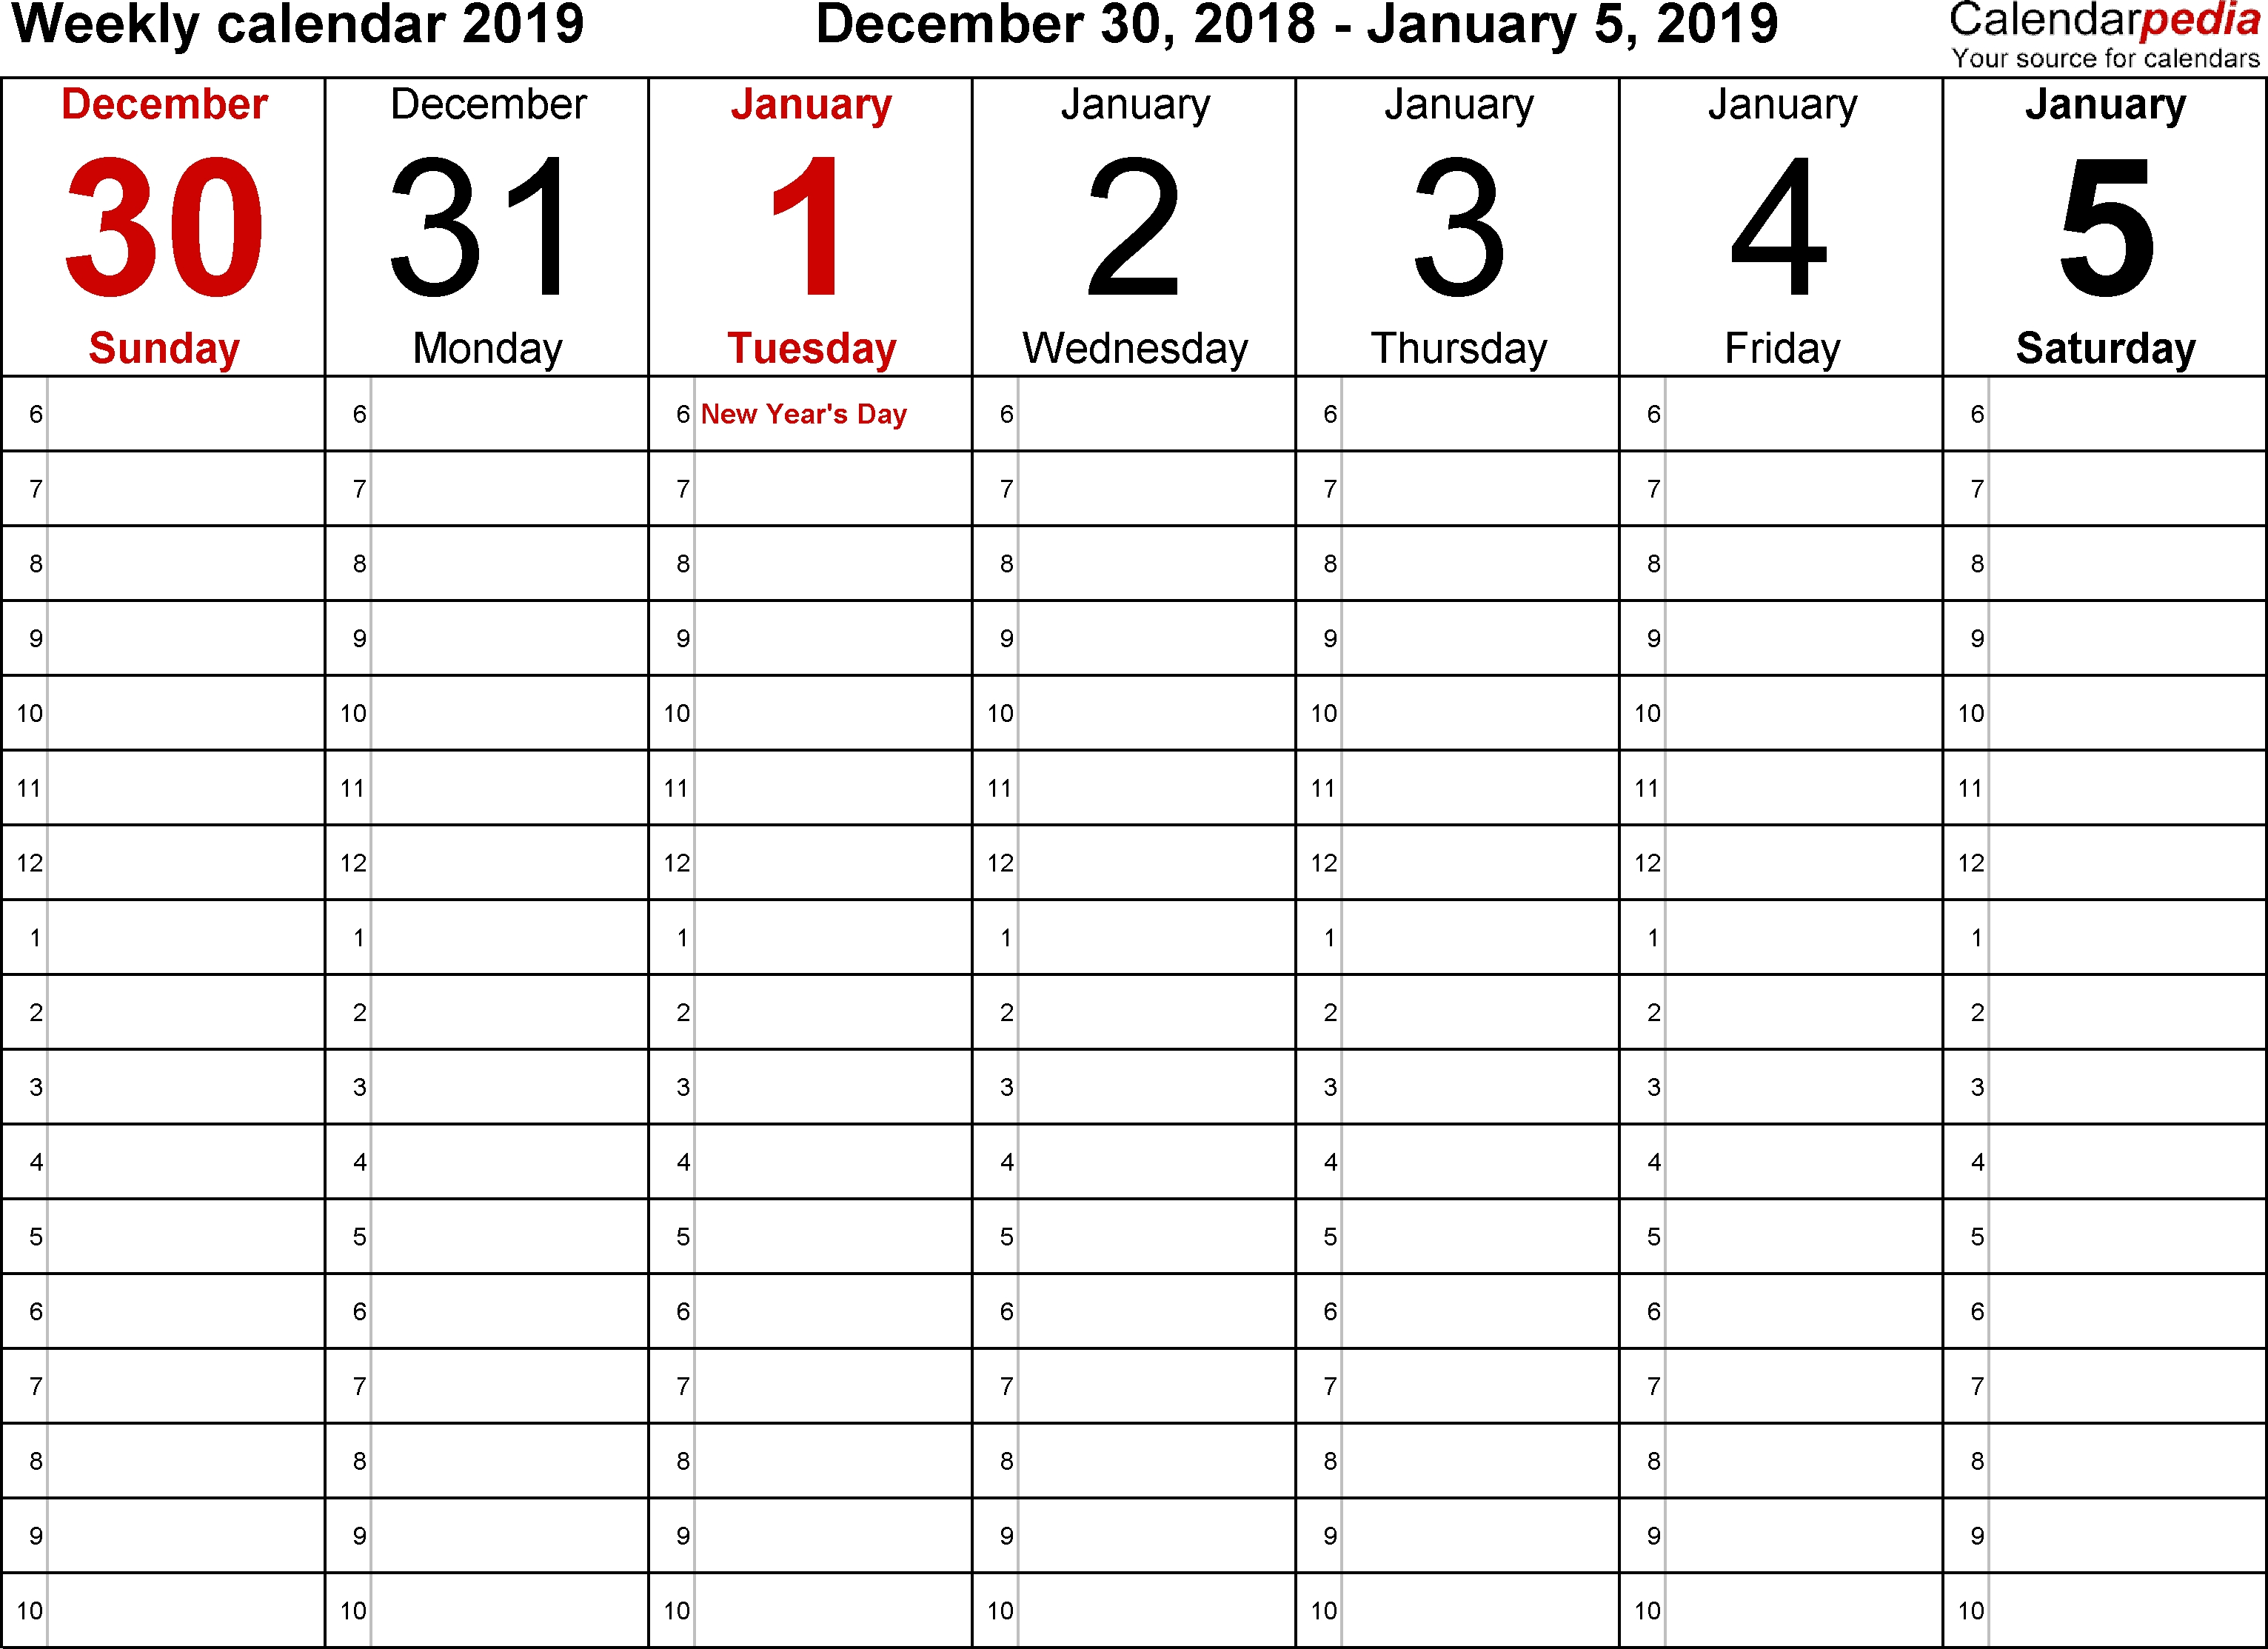 Weekly Calendar 2019 For Word - 12 Free Printable Templates pertaining to Fill In Blank Weekly Calendar Templates